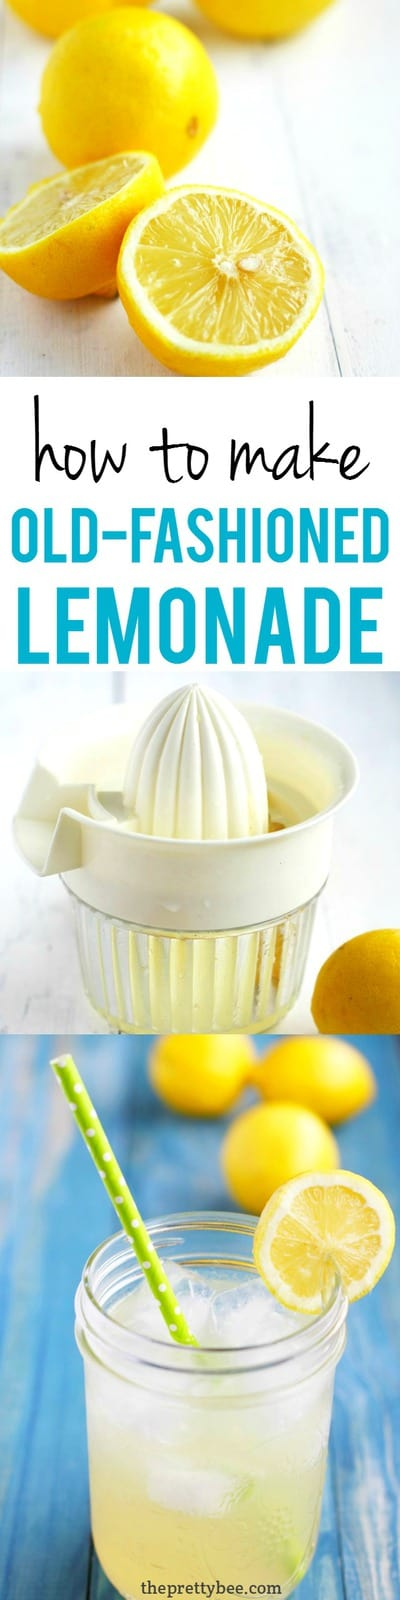 There's nothing like a glass of cold lemonade on a hot summer day! This recipe for old fashioned lemonade is the best! #lemonade #vegan #summer